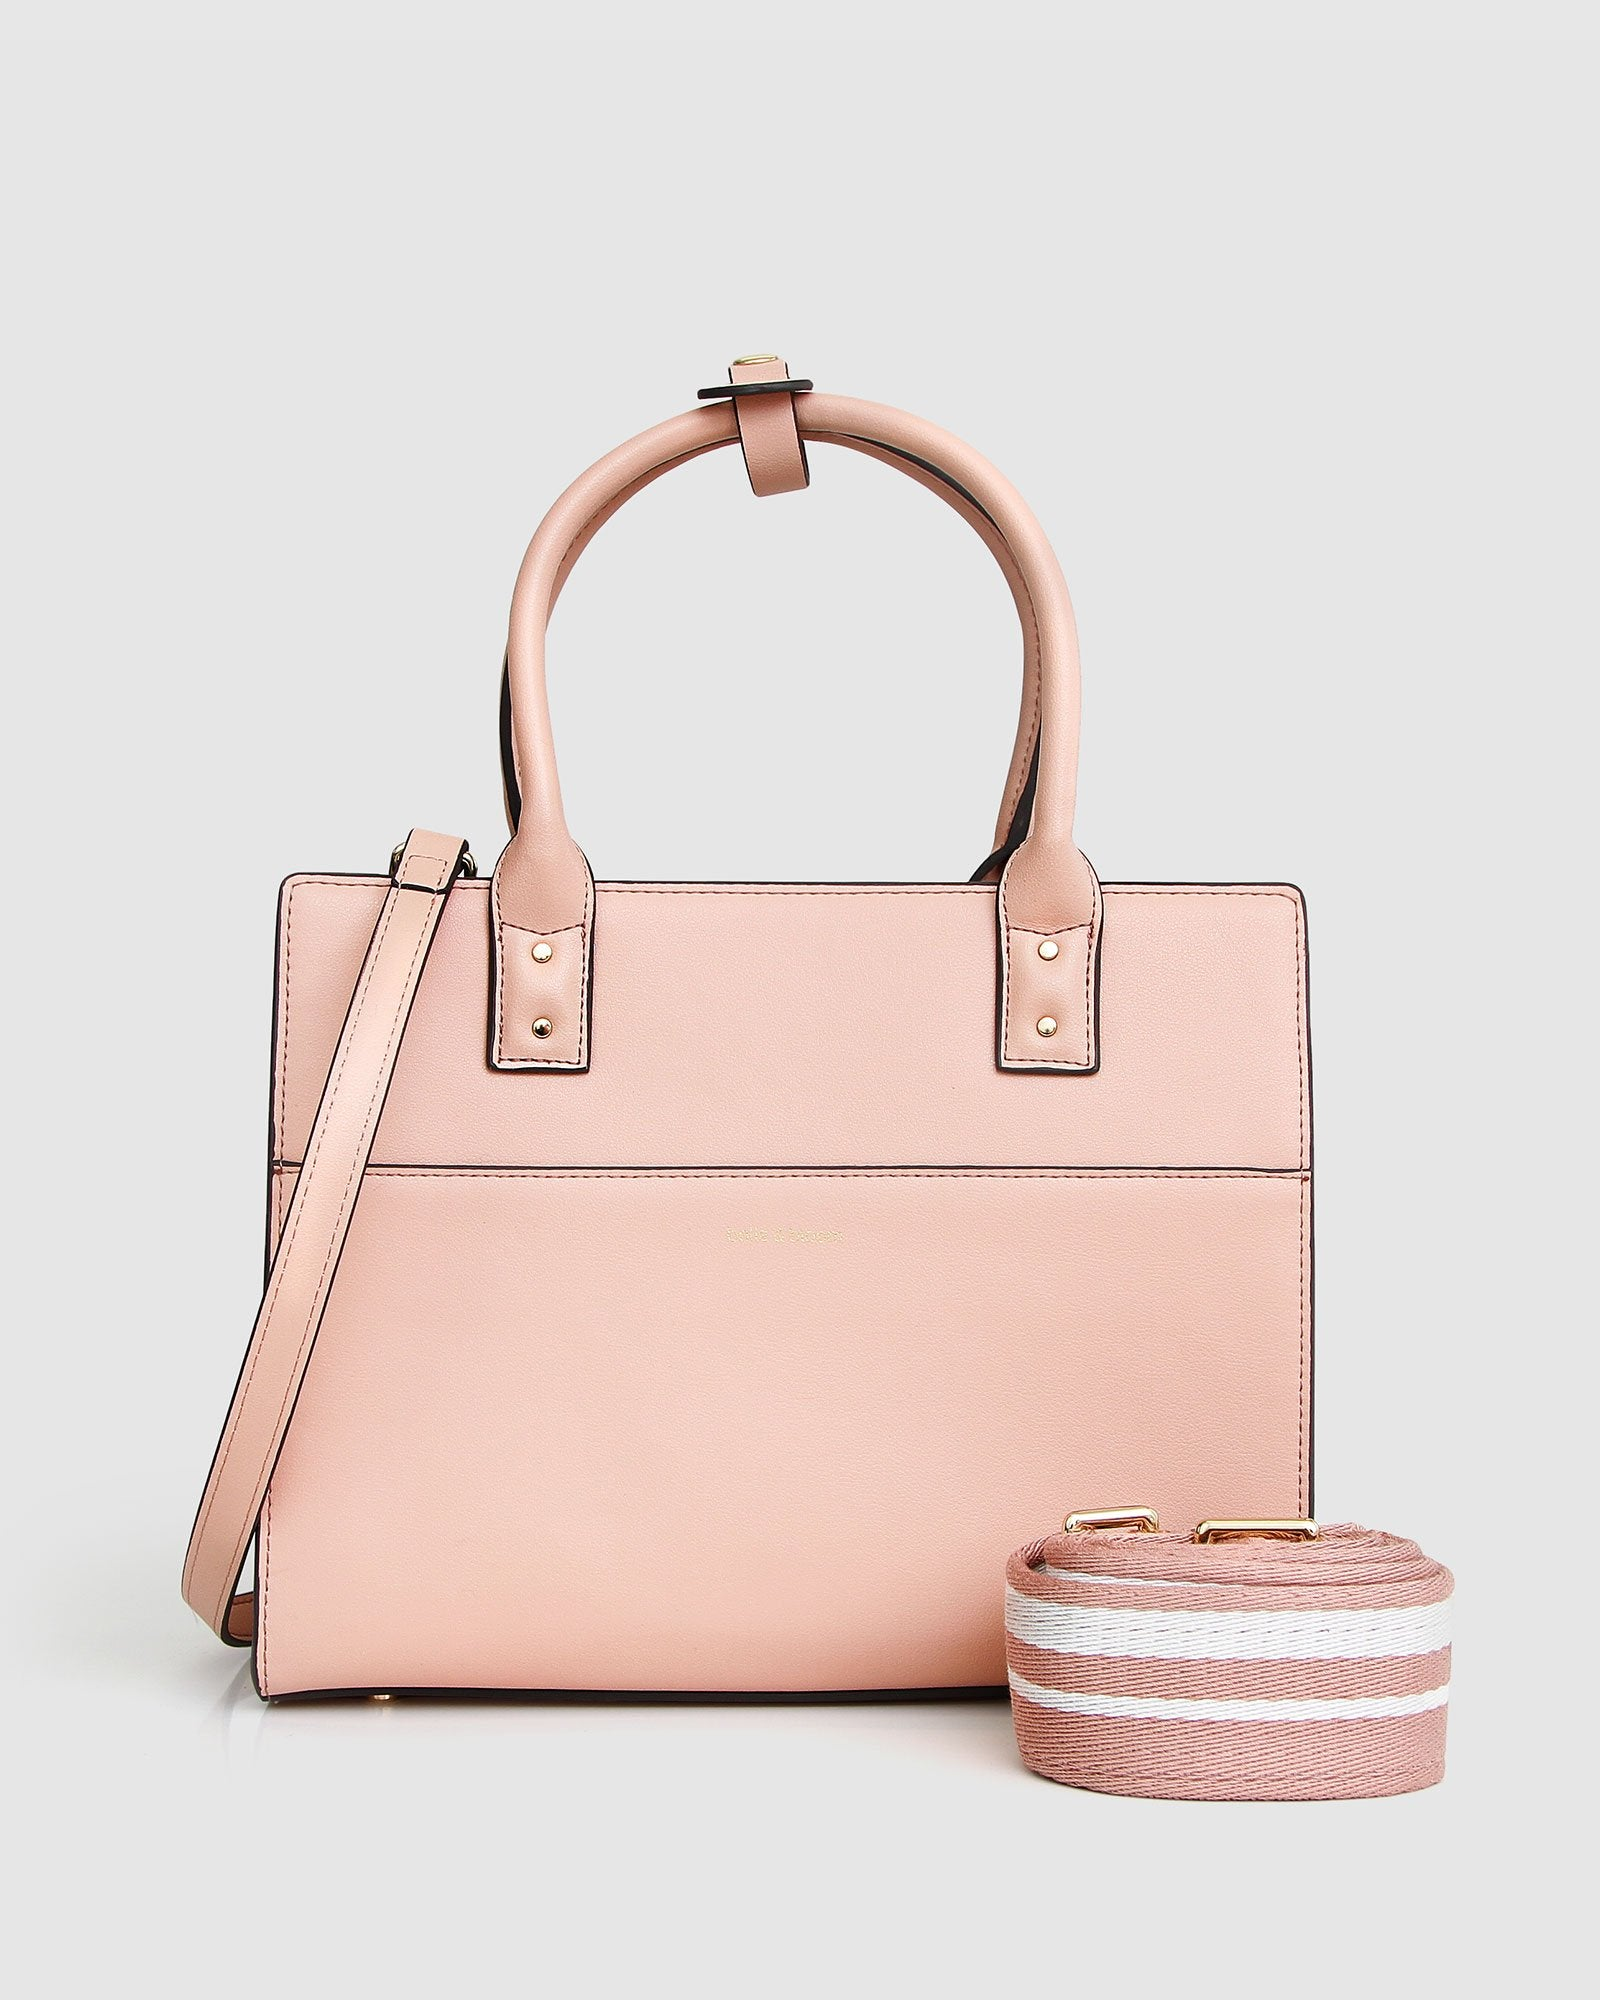 Someone Like You Leather Satchel - Dusty Rose